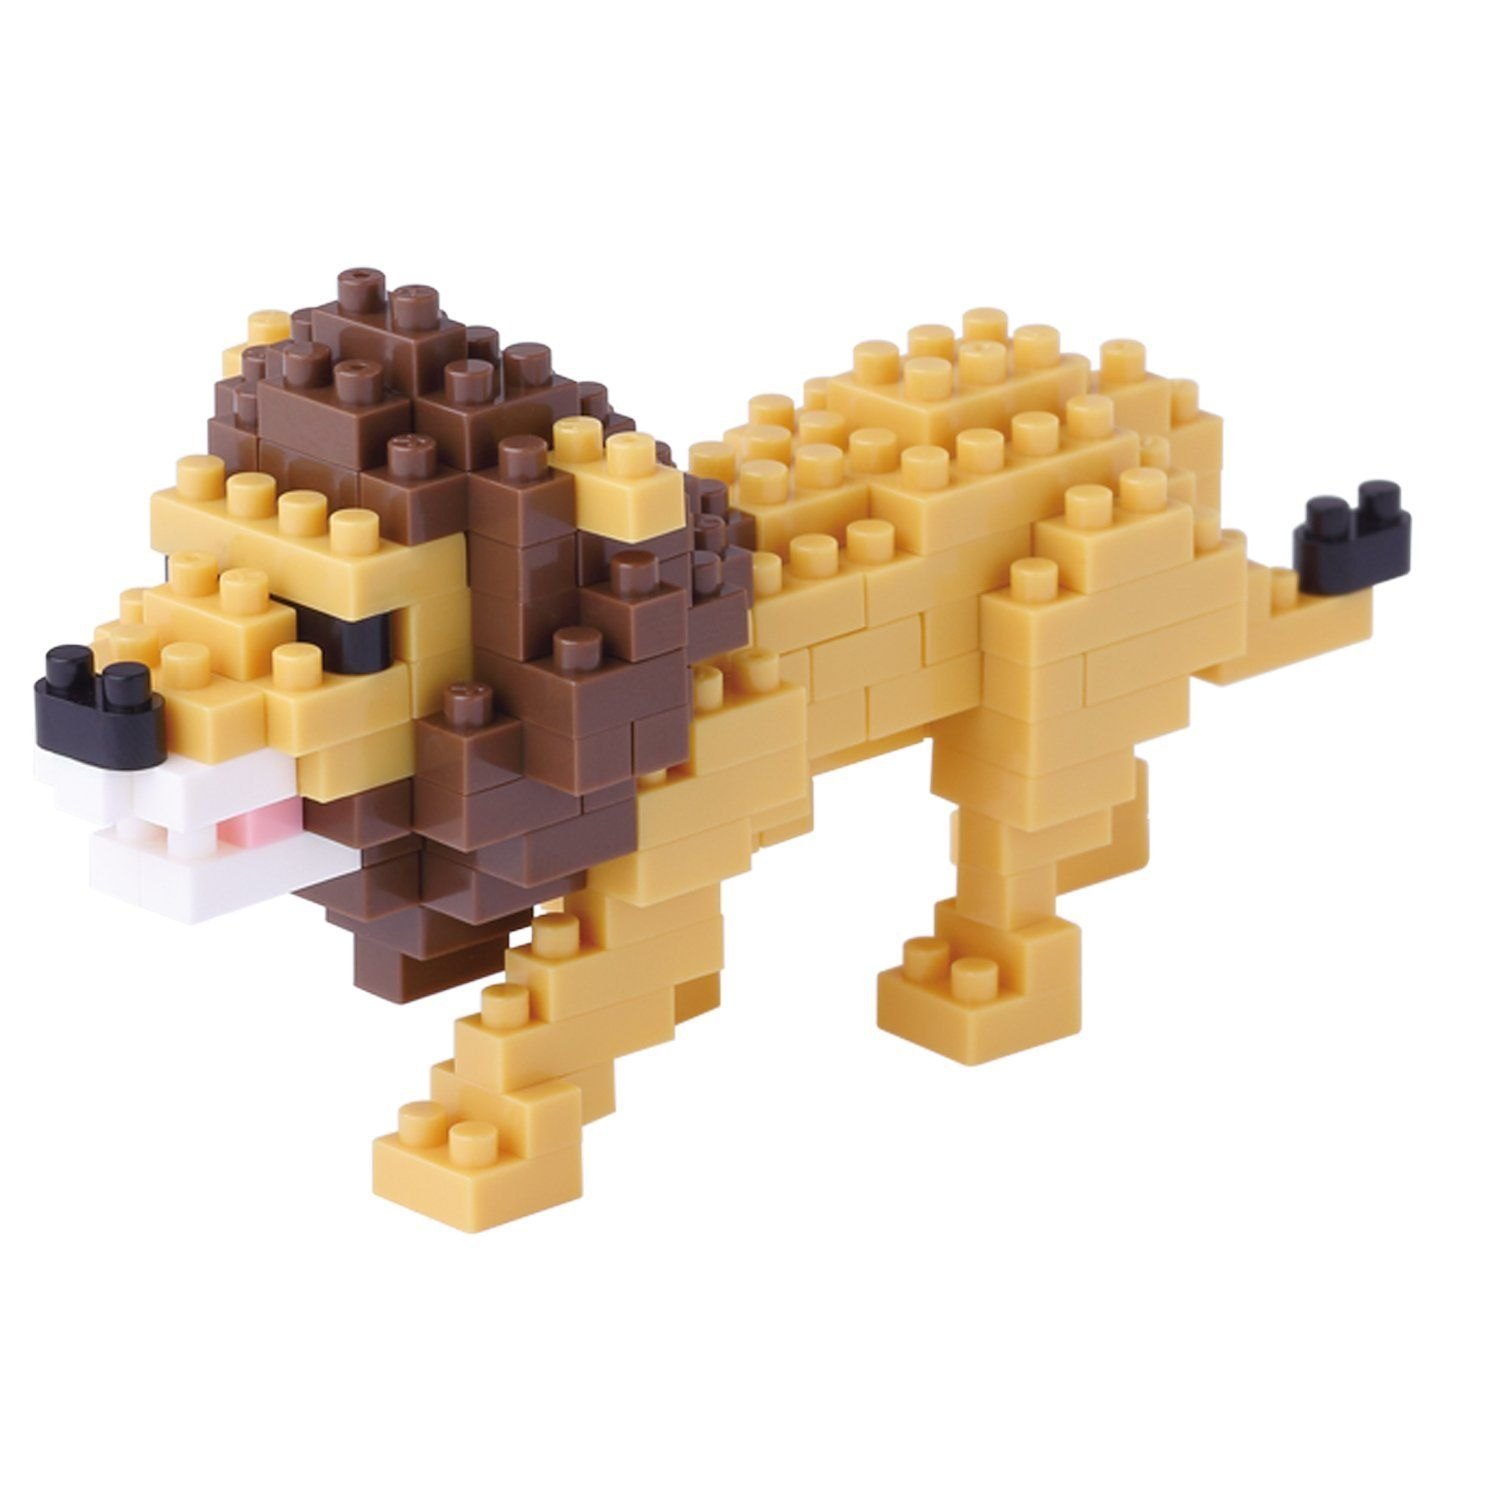 Lion Mini Building Set by Nanoblock (NBC170) by nanoblock